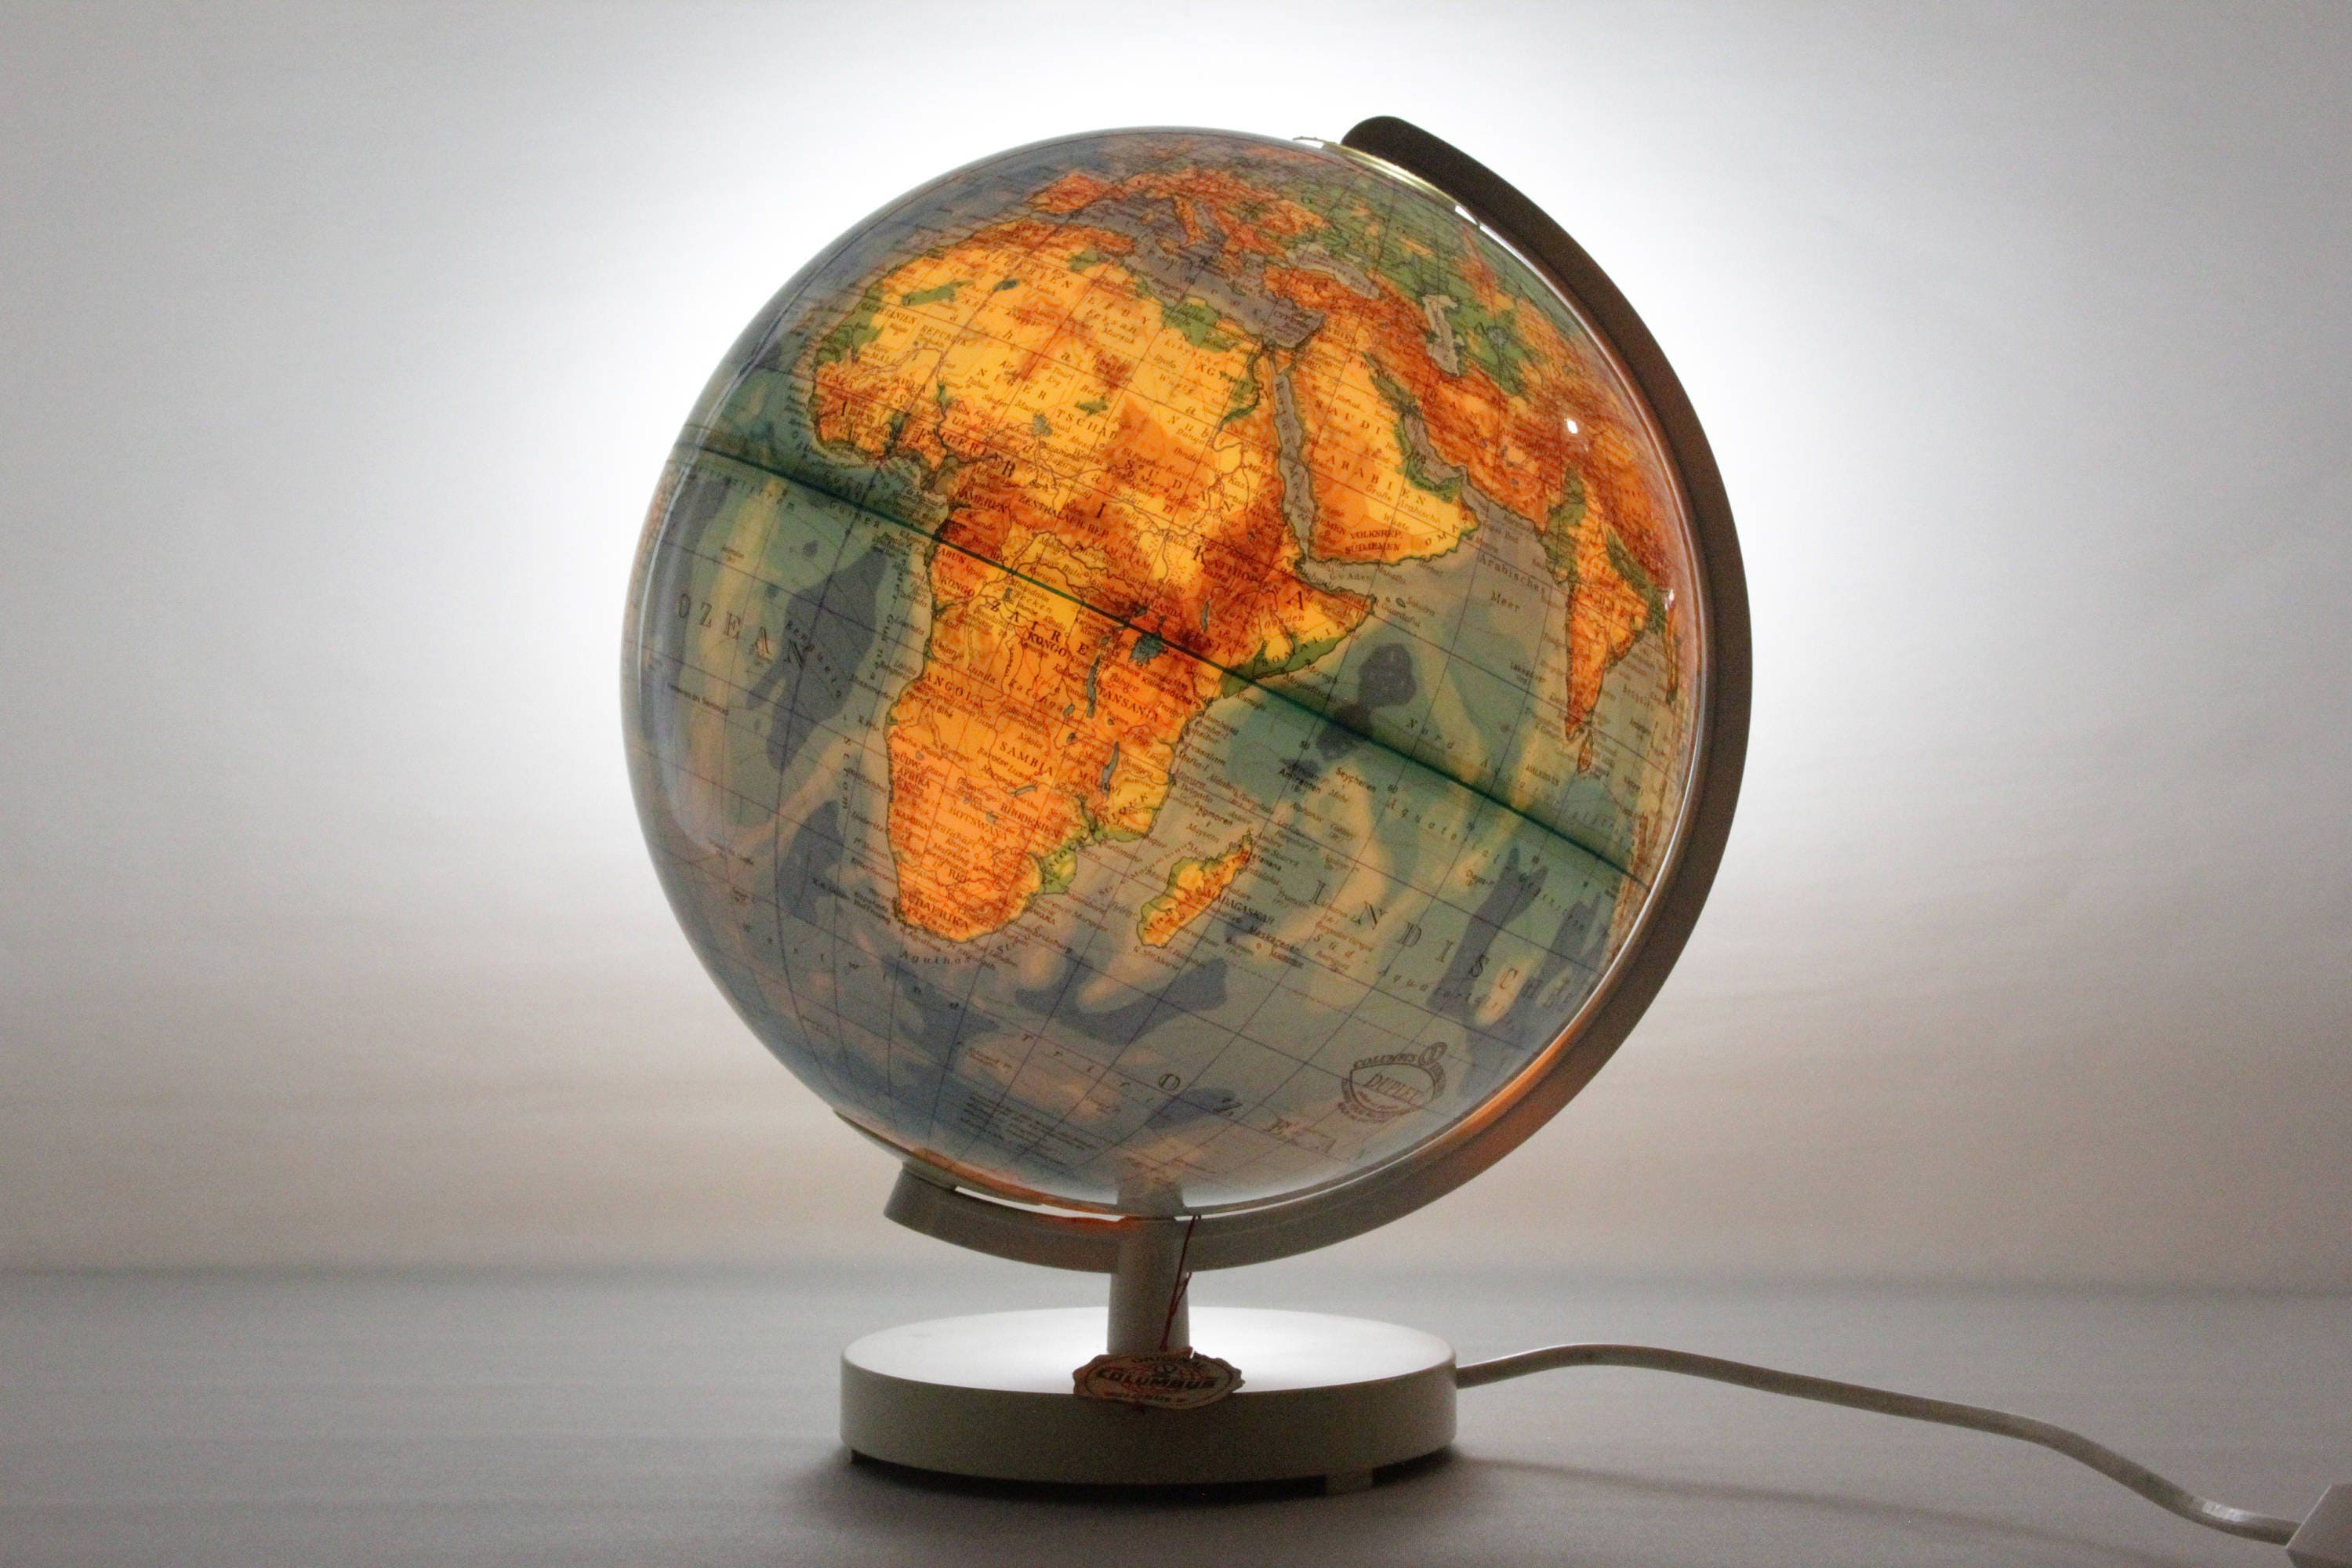 World globe vintage old world globe light up globe old map globe world globe vintage old world globe light up globe old map globe german columbus 70s gumiabroncs Gallery